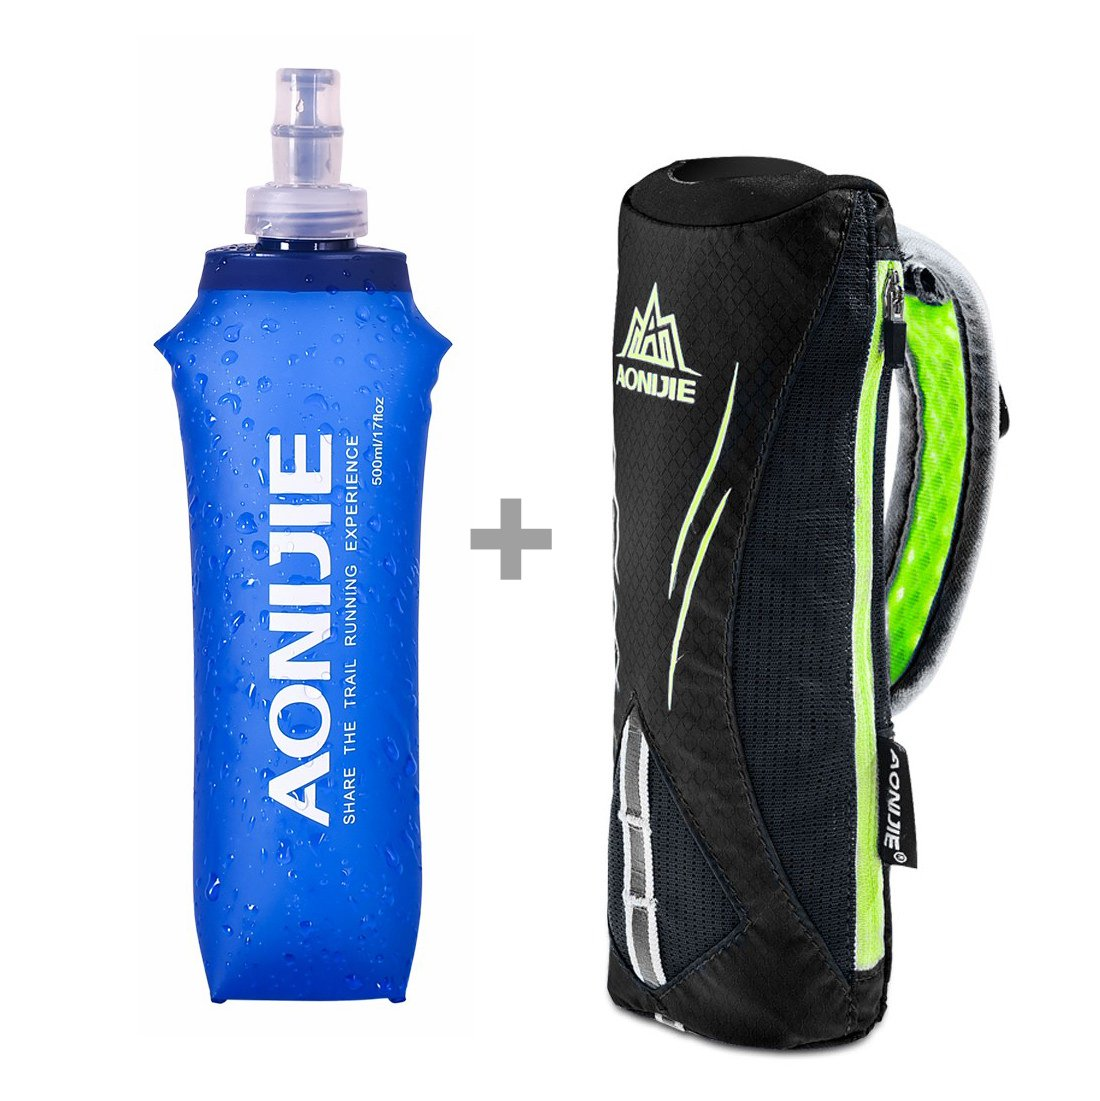 LX LERMX Handheld Water Bottle for Running Quick Grip Chill 17 oz Handheld Soft Water Bottle with Hand Strap Hydration Pack